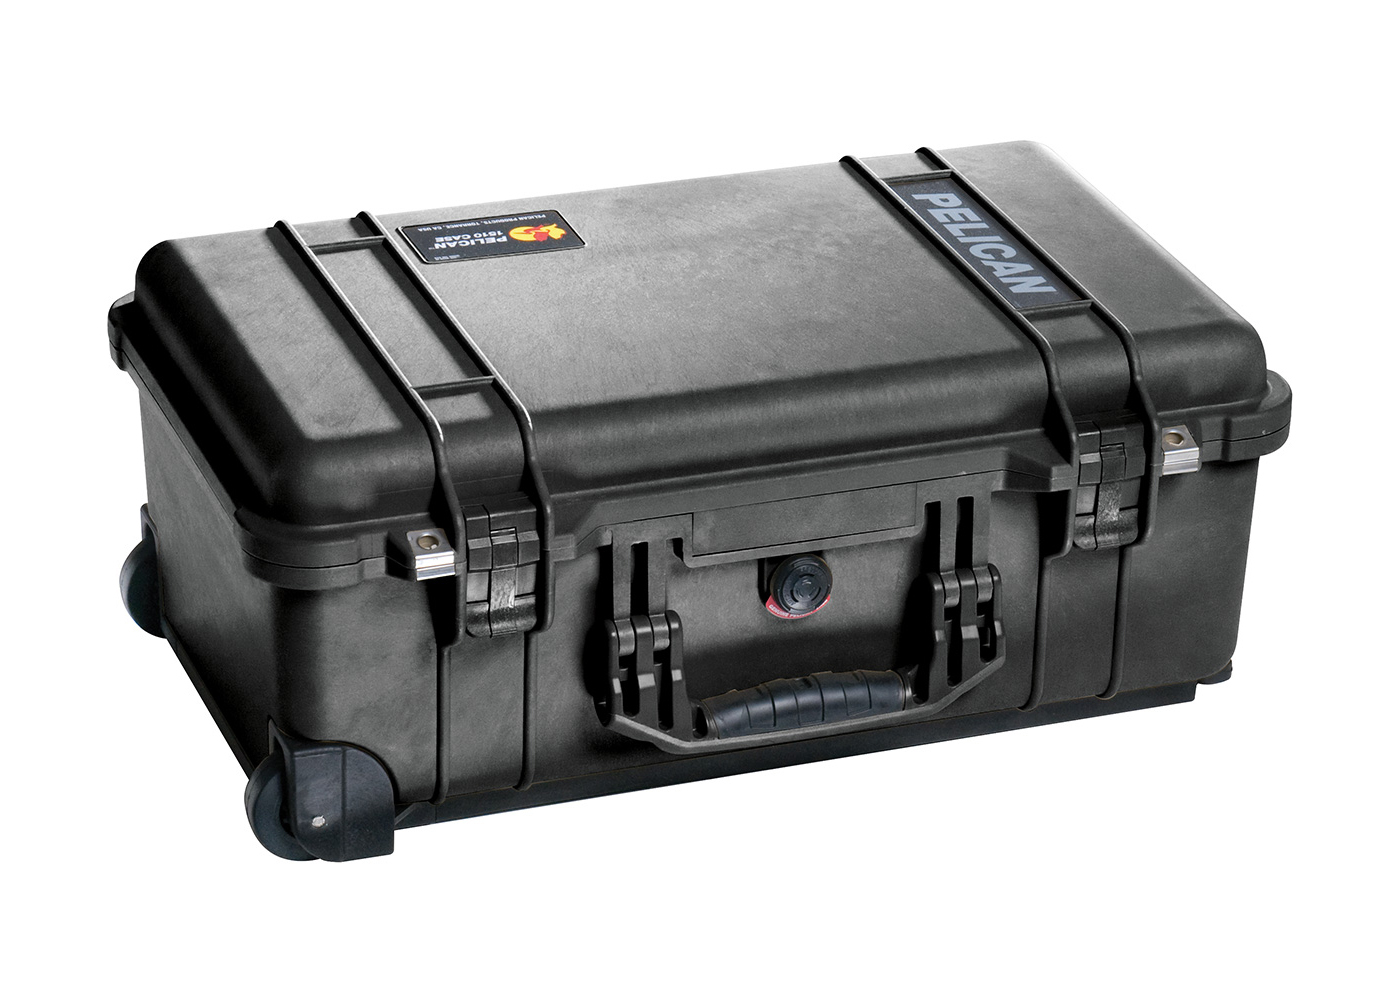 The Pelican 1510 is within the FAA maximum carry on size, so you don't have to check it in.